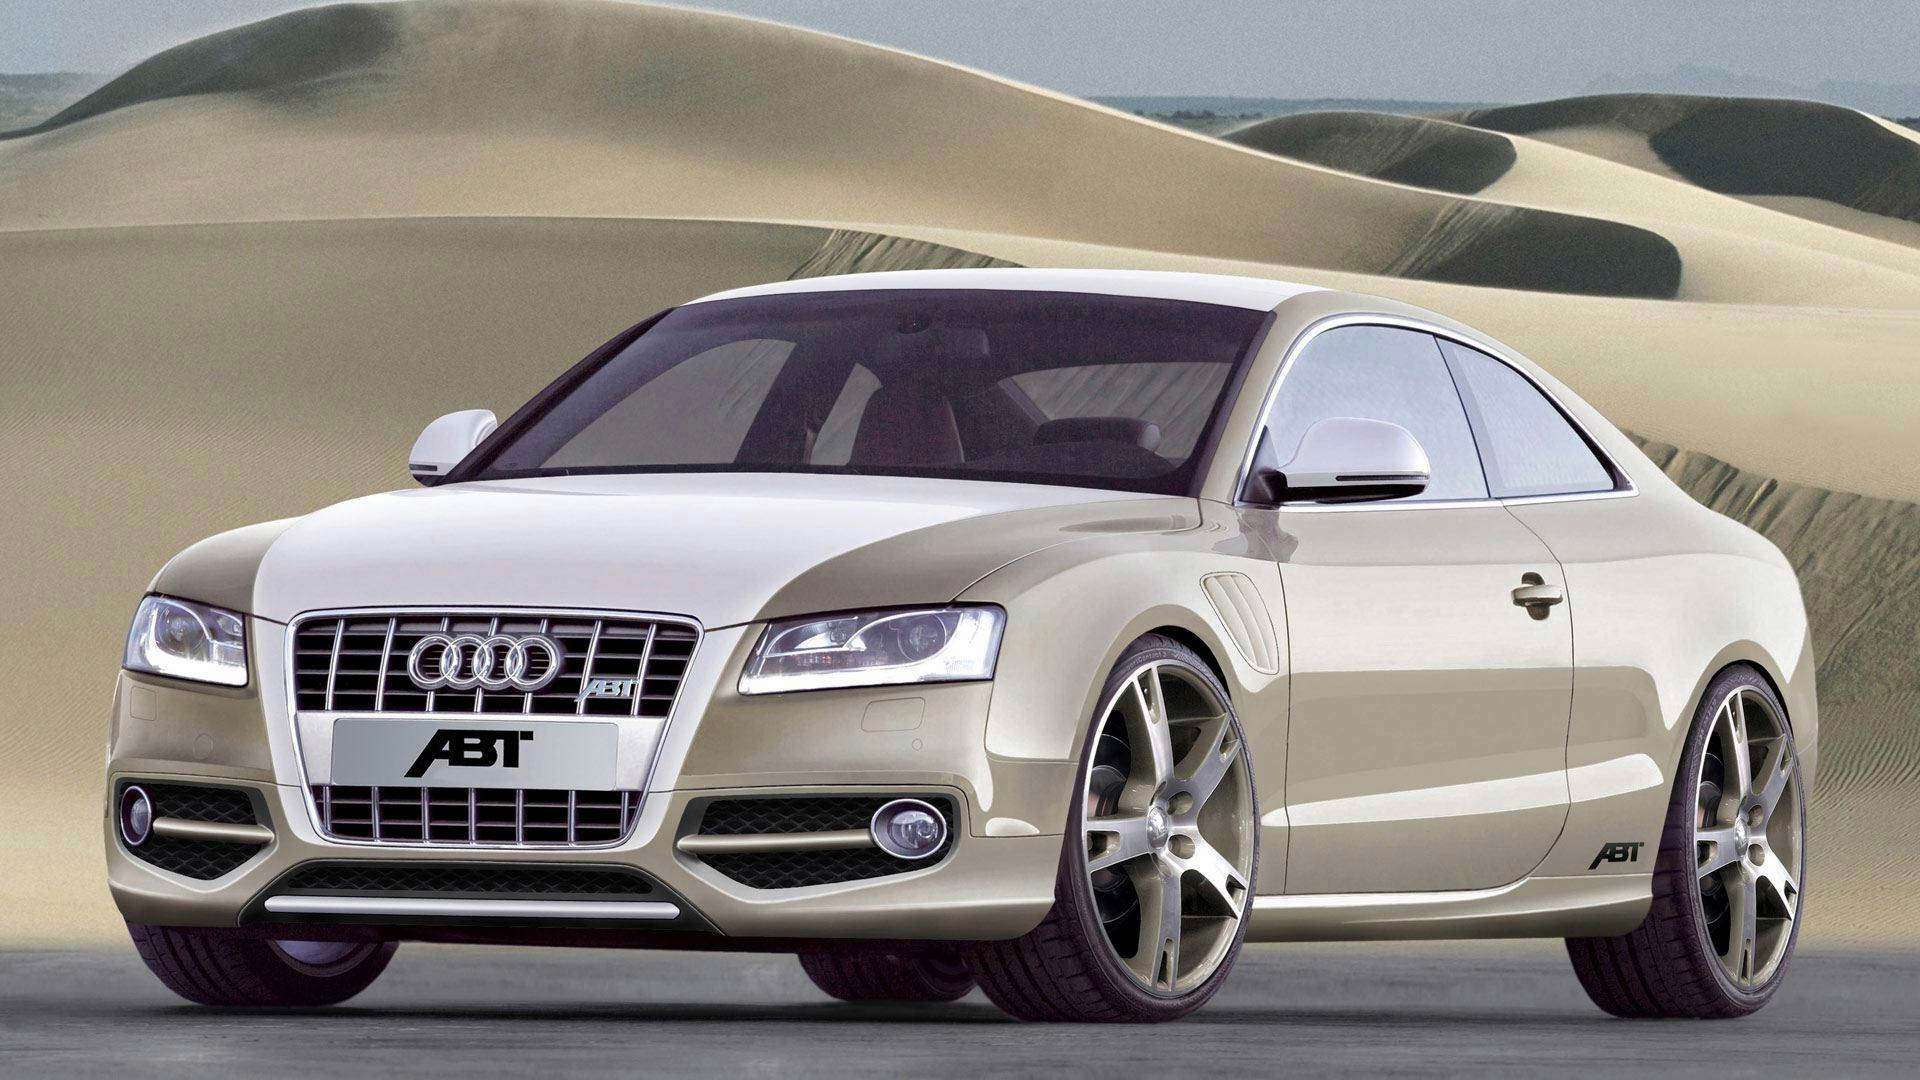 New Audi Car Hd Wallpapers For Dekstop Hd Walls 1920x1080